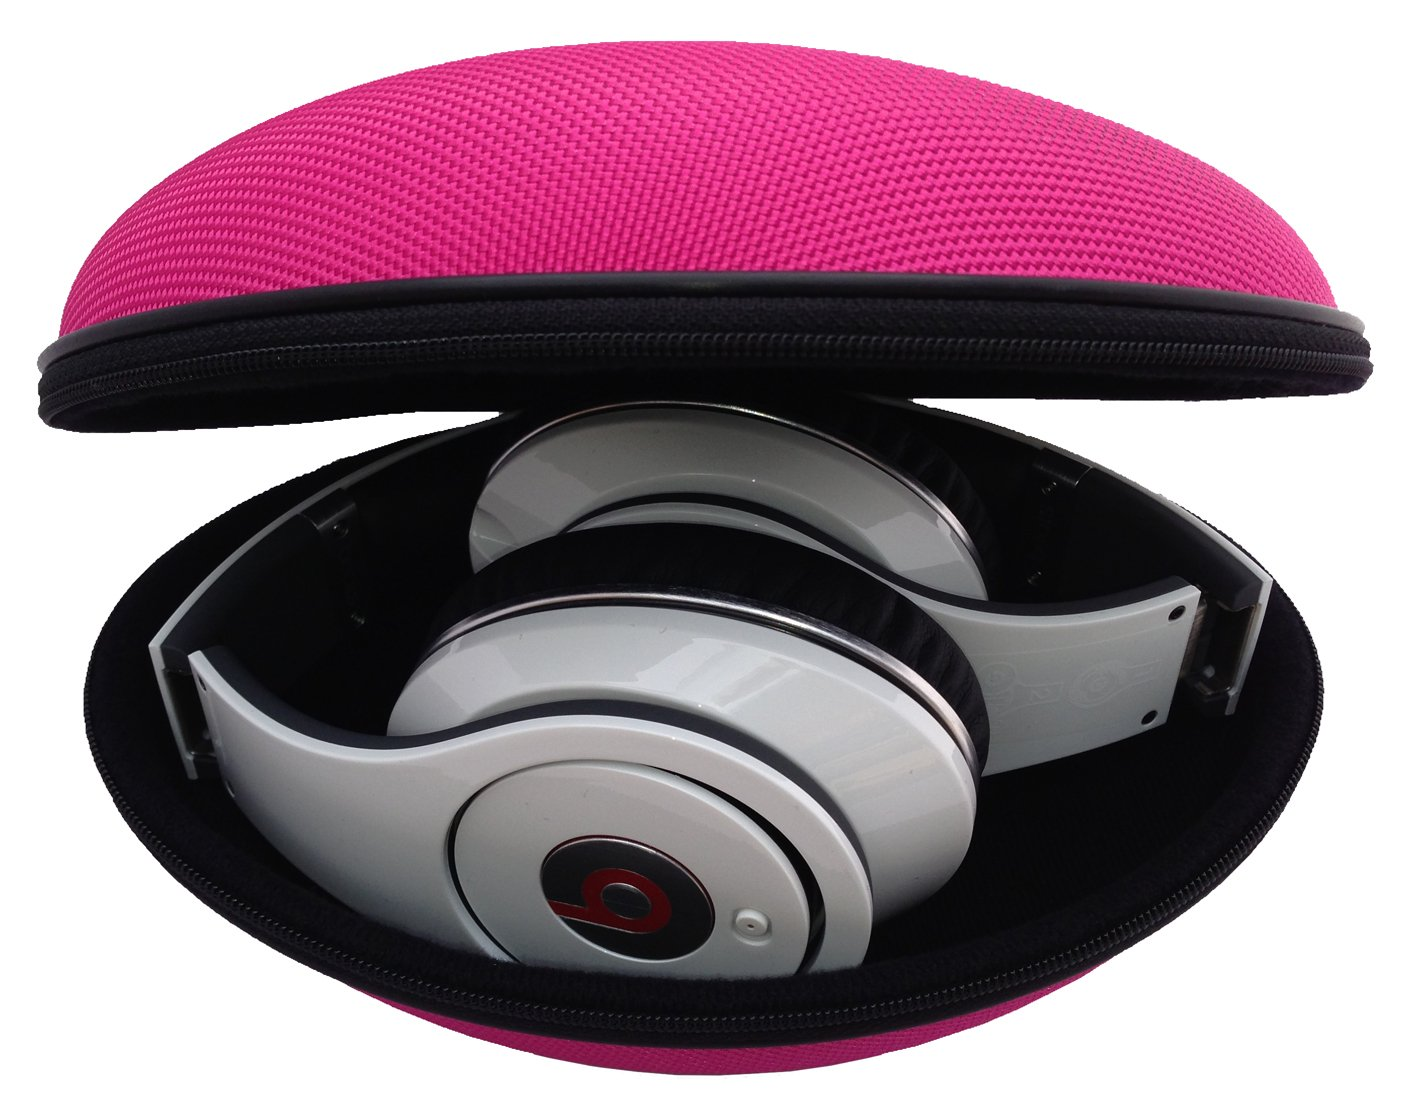 bd4c4f7d381 Amazon.com: CASEBUDi Oval Hard Shell Headphone Carrying Case | Travel Pouch  Protection for Beats & Other Foldable Headphones | Pink Ballistic Nylon:  Home ...